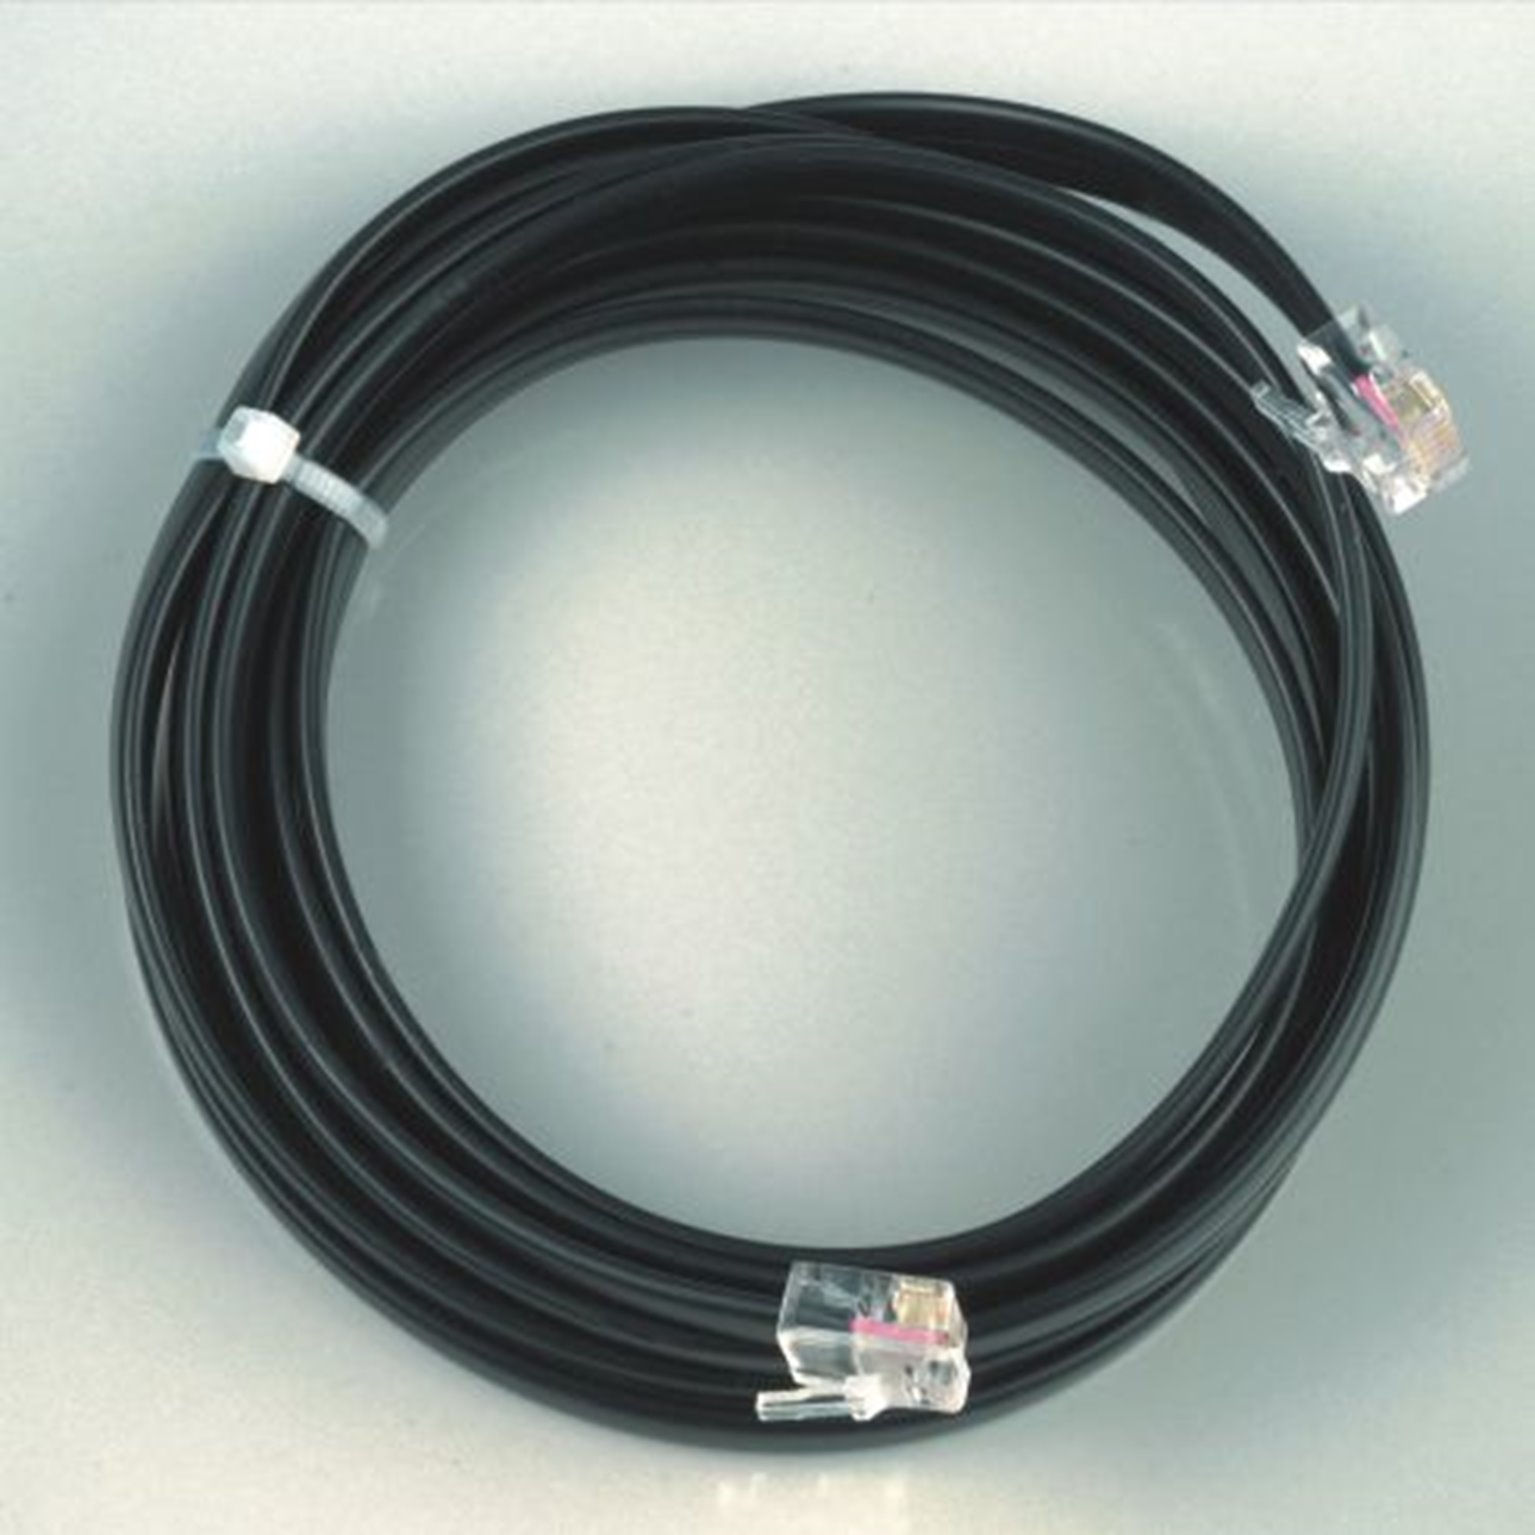 LY160 XpressNet Cable 2.5m